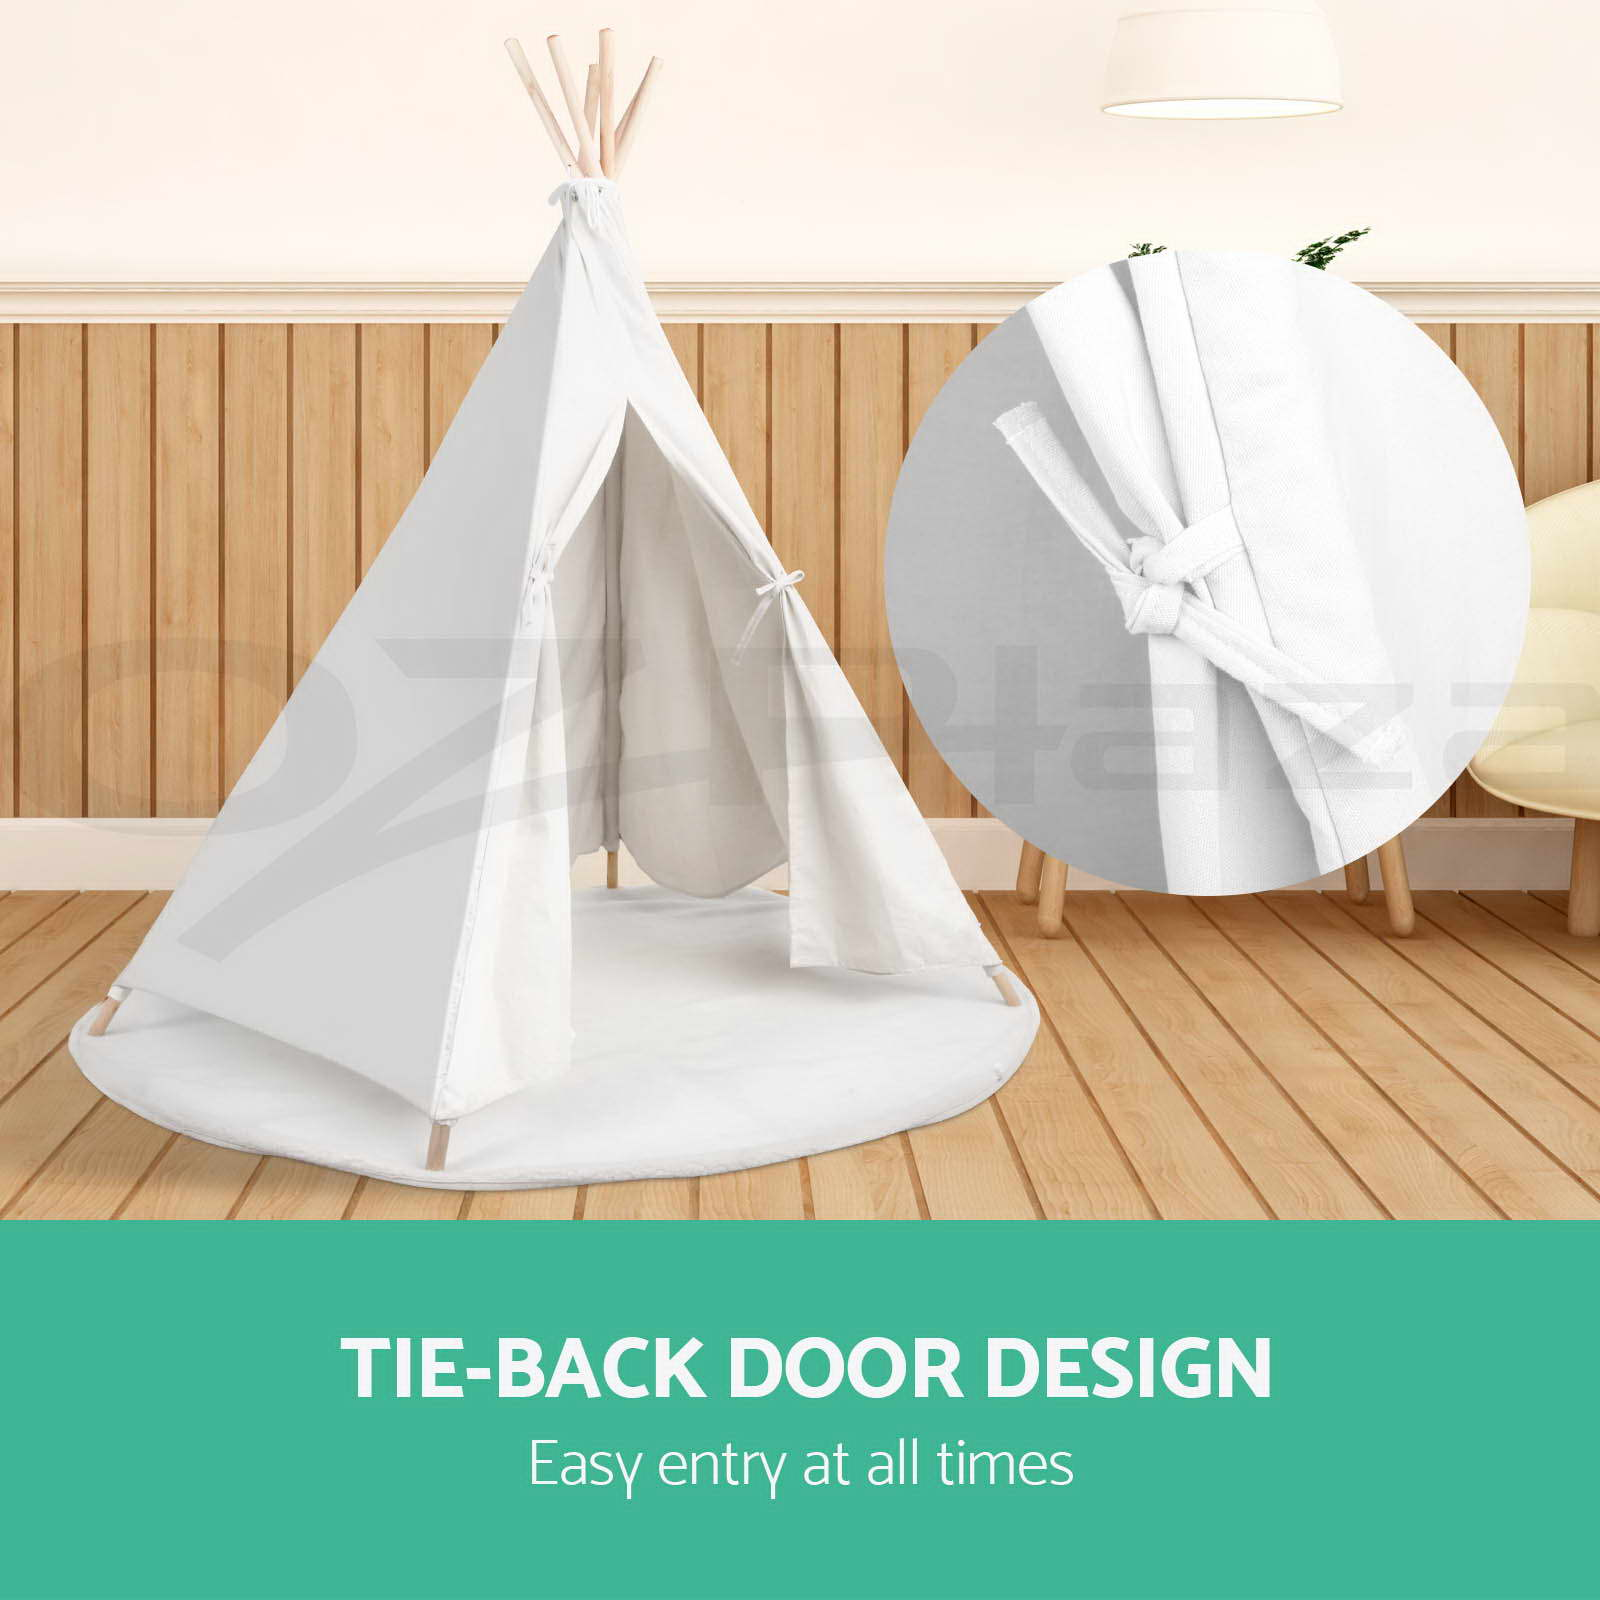 Kids Teepee Australia Kids Teepee Tent Children Hexagonal Cotton Canvas White